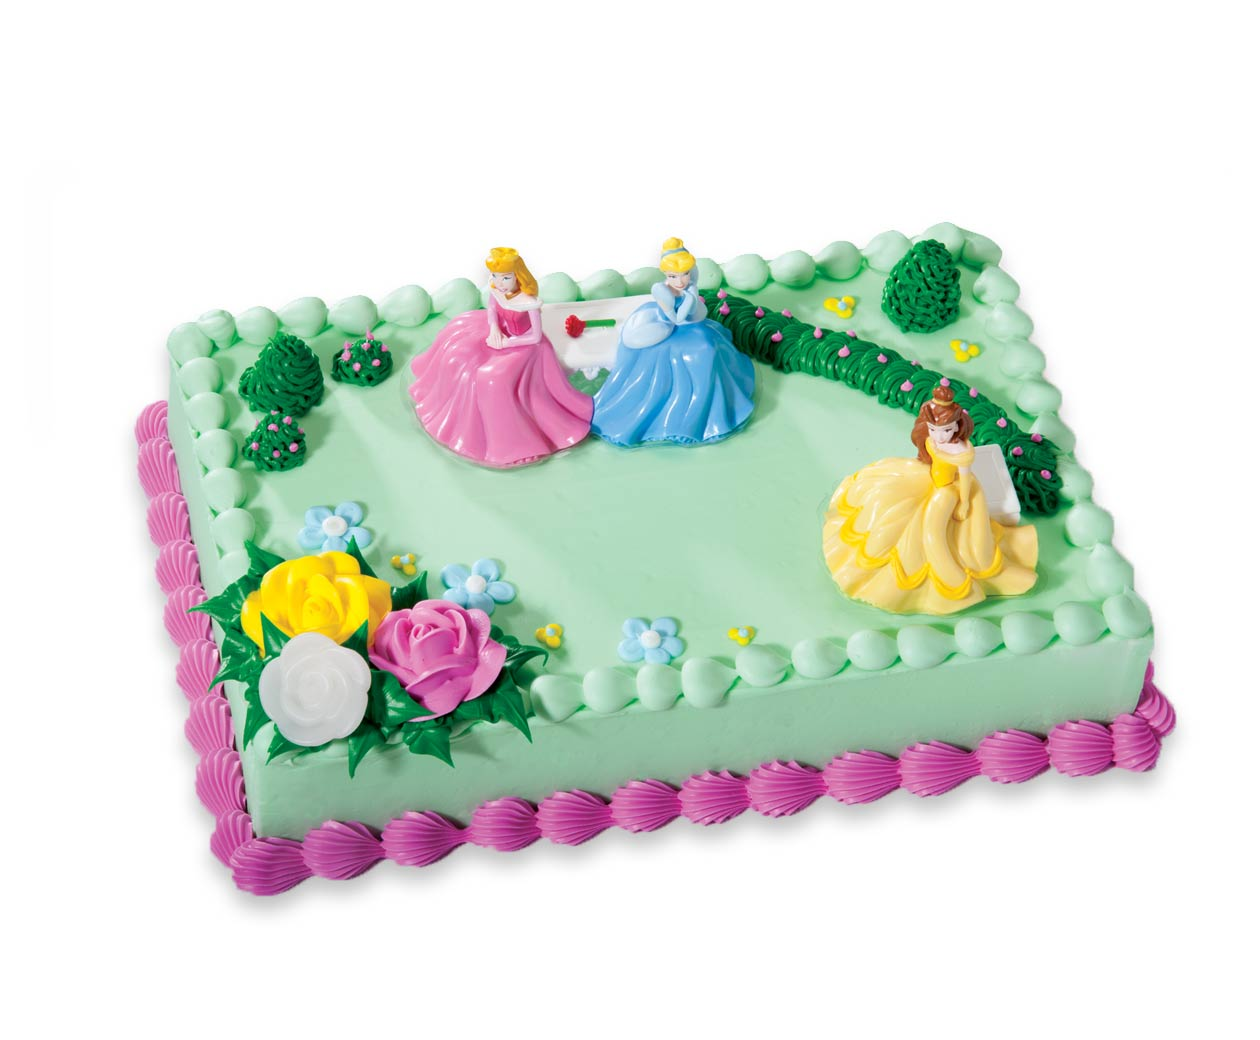 Cake Design For 2 Year Old Baby Girl : Order a Kid s Birthday Cake at Cold Stone Creamery